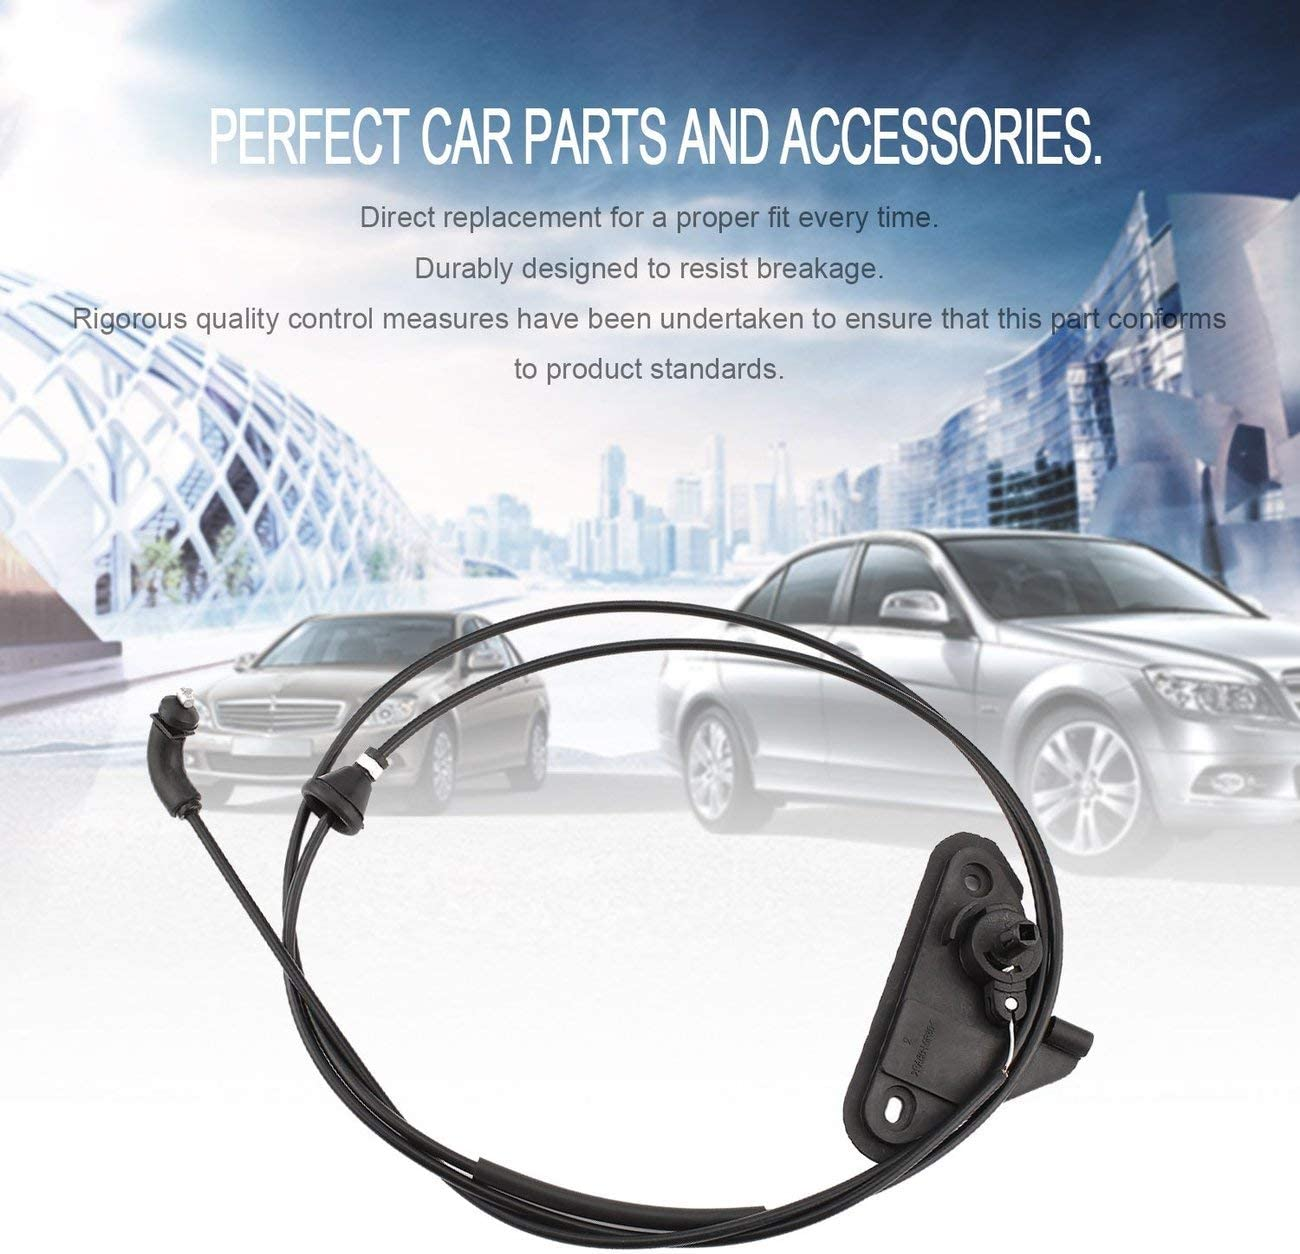 Elviray Professional Cover Cable Kit Bonnet Hood Release Cable for Ford for Mondeo MK4 2007 Neat Car Parts /& Accessories